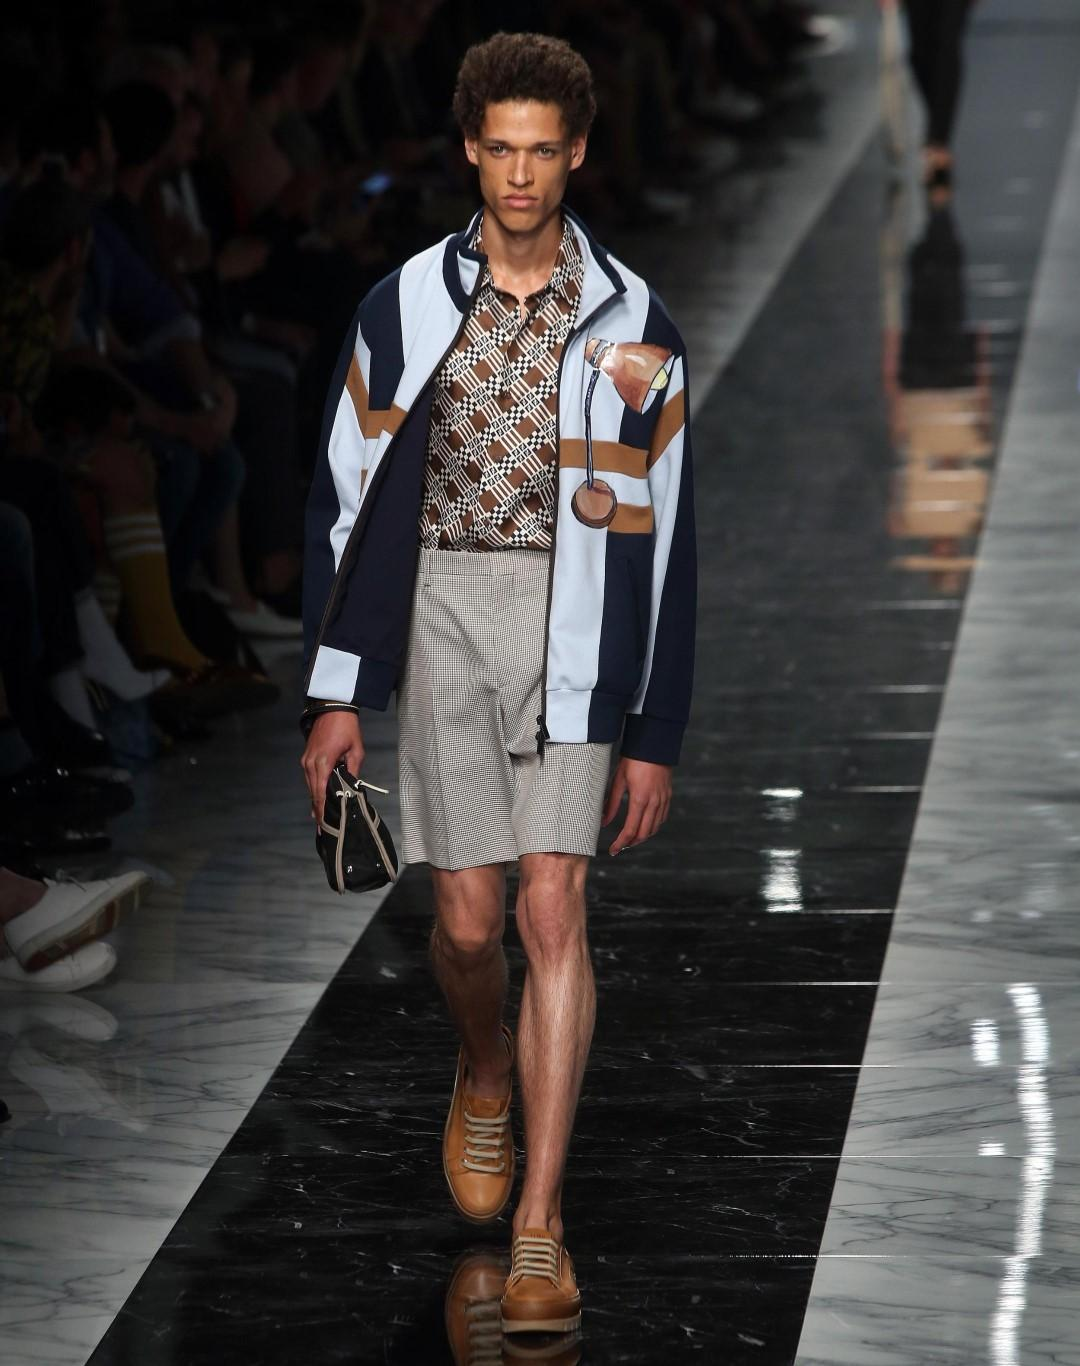 Moda: Armani in greige, Fendi casual chic